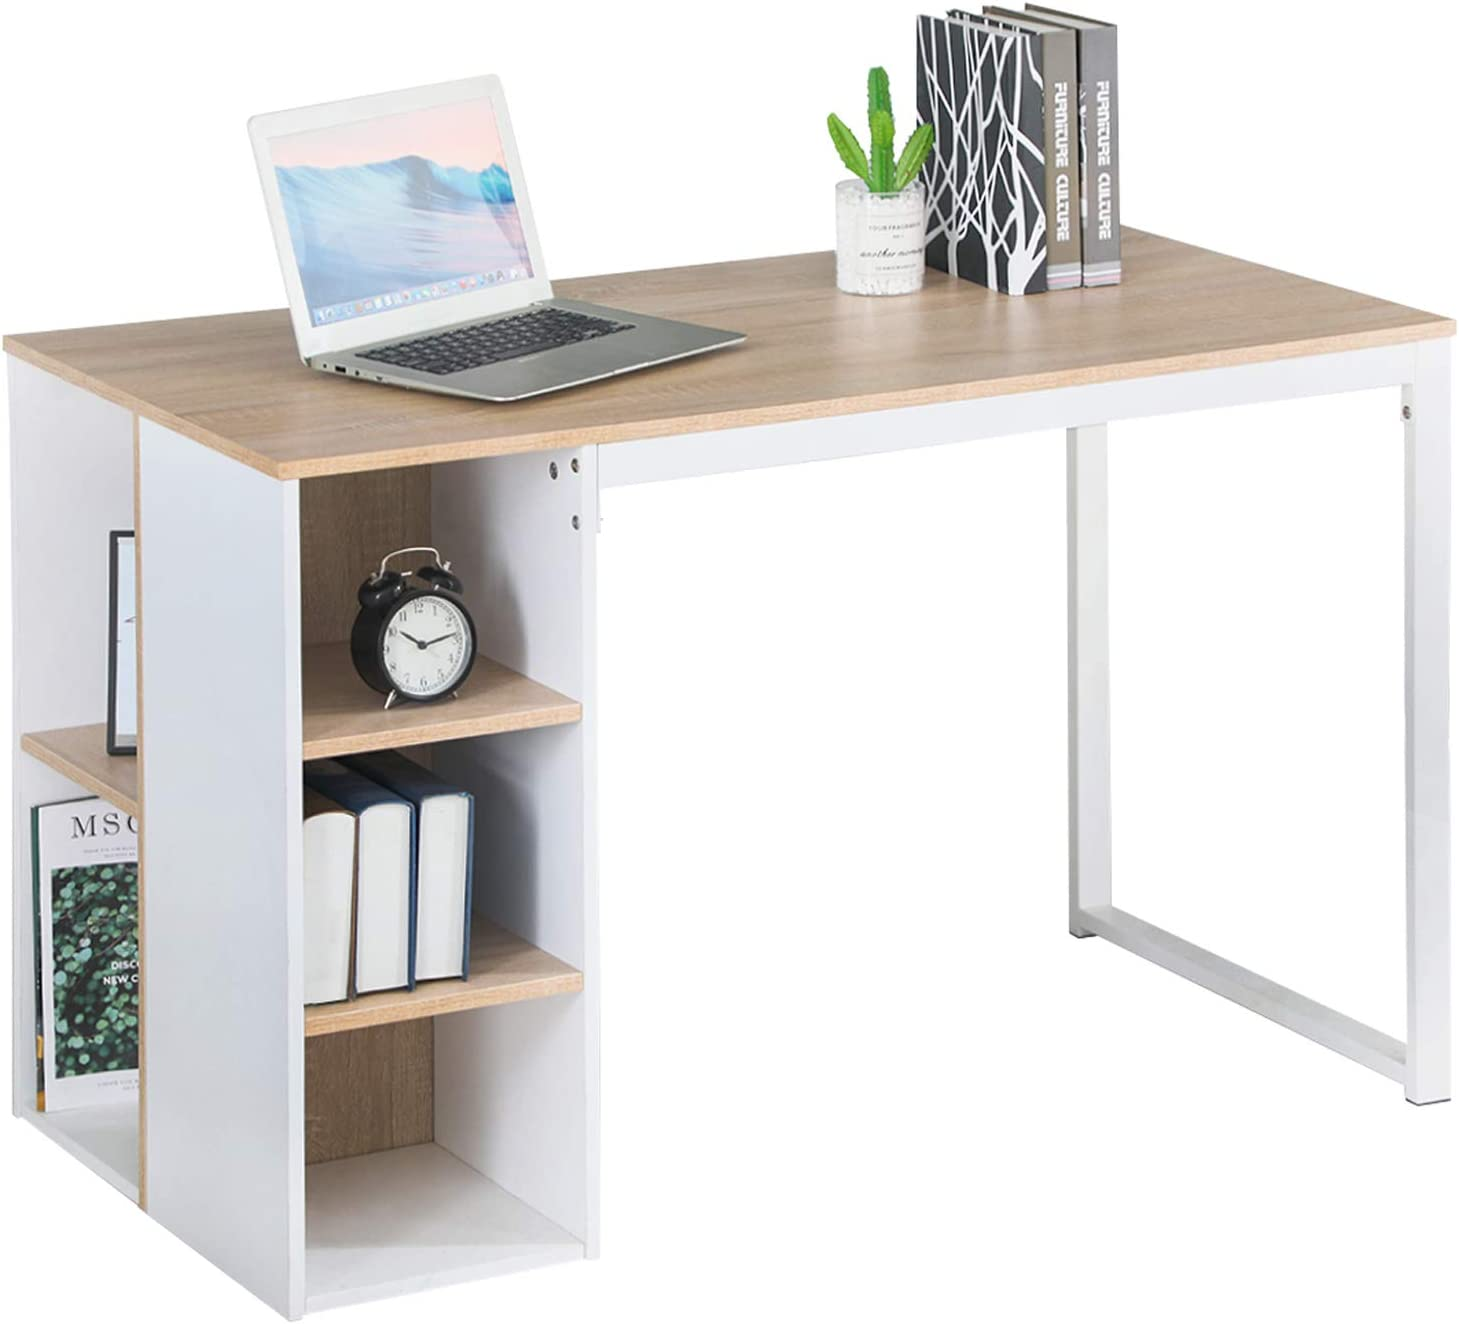 - Amazon.com: Office Computer Writing Desk With Storage, Large Work